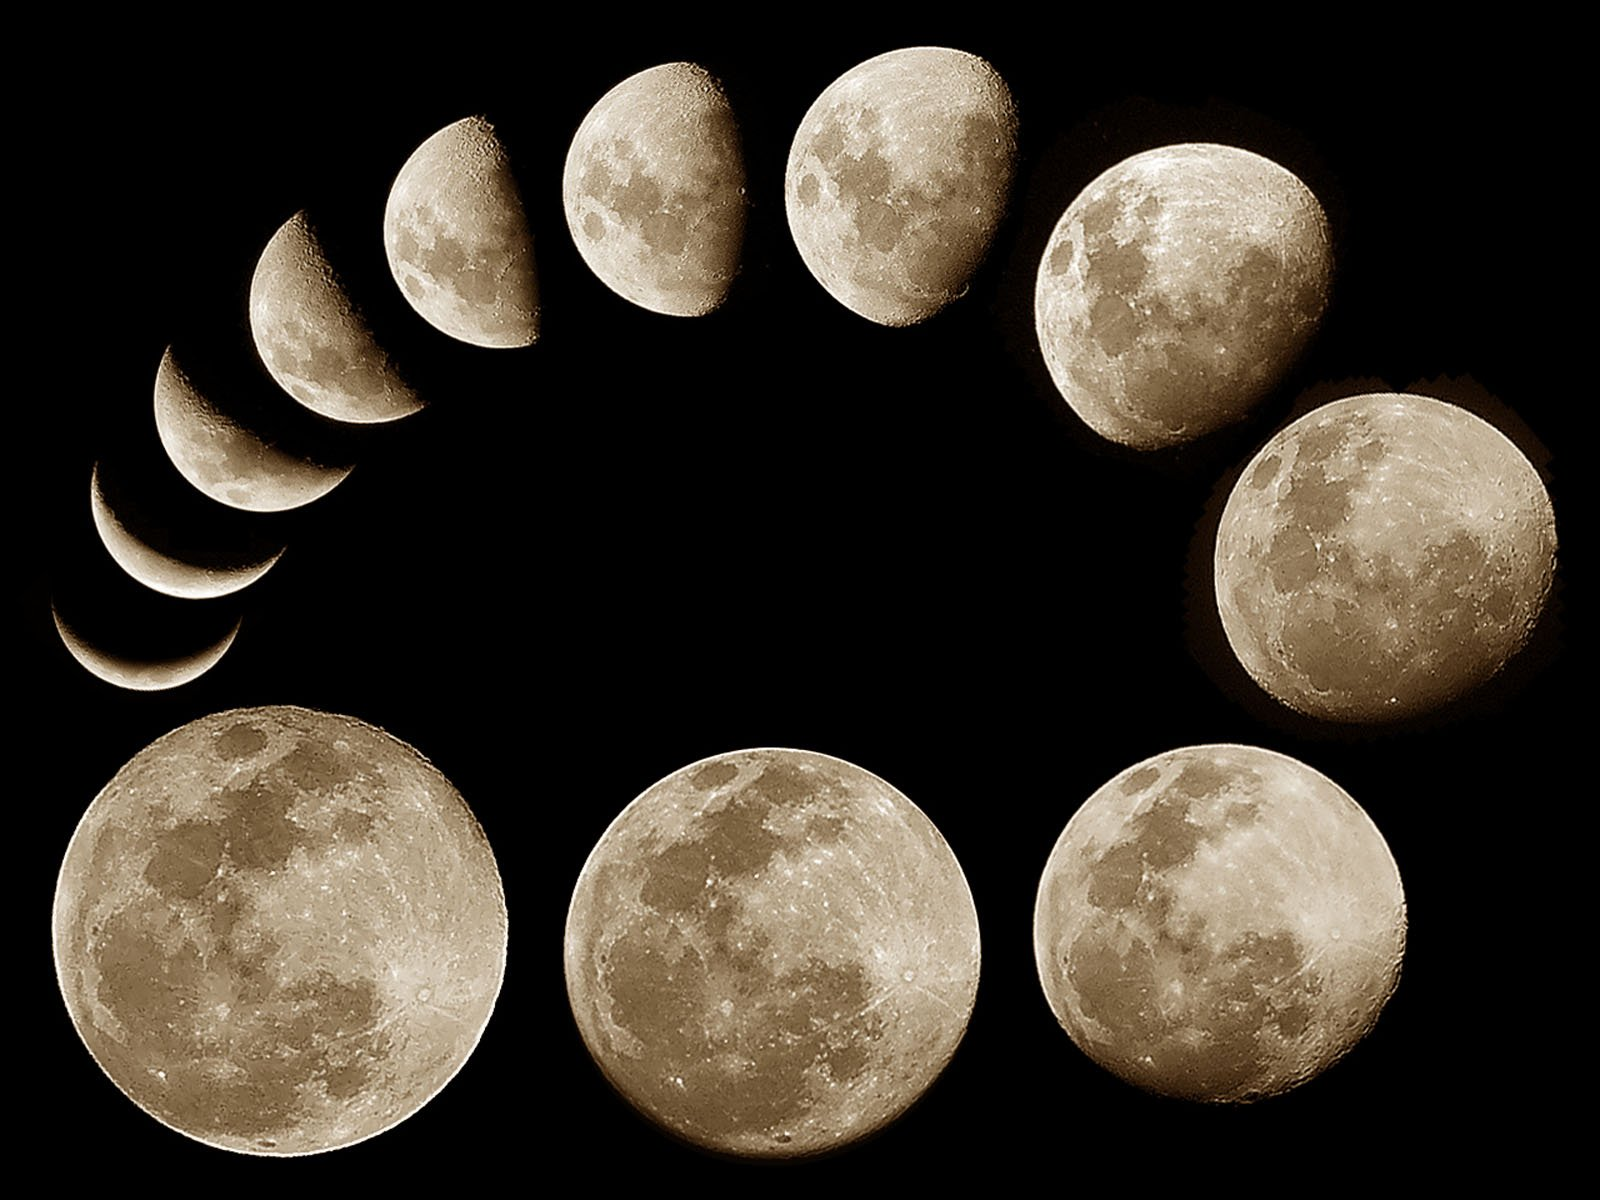 Tag Moon Phases Paos Images Wallpapers and Pictures for 1600x1200